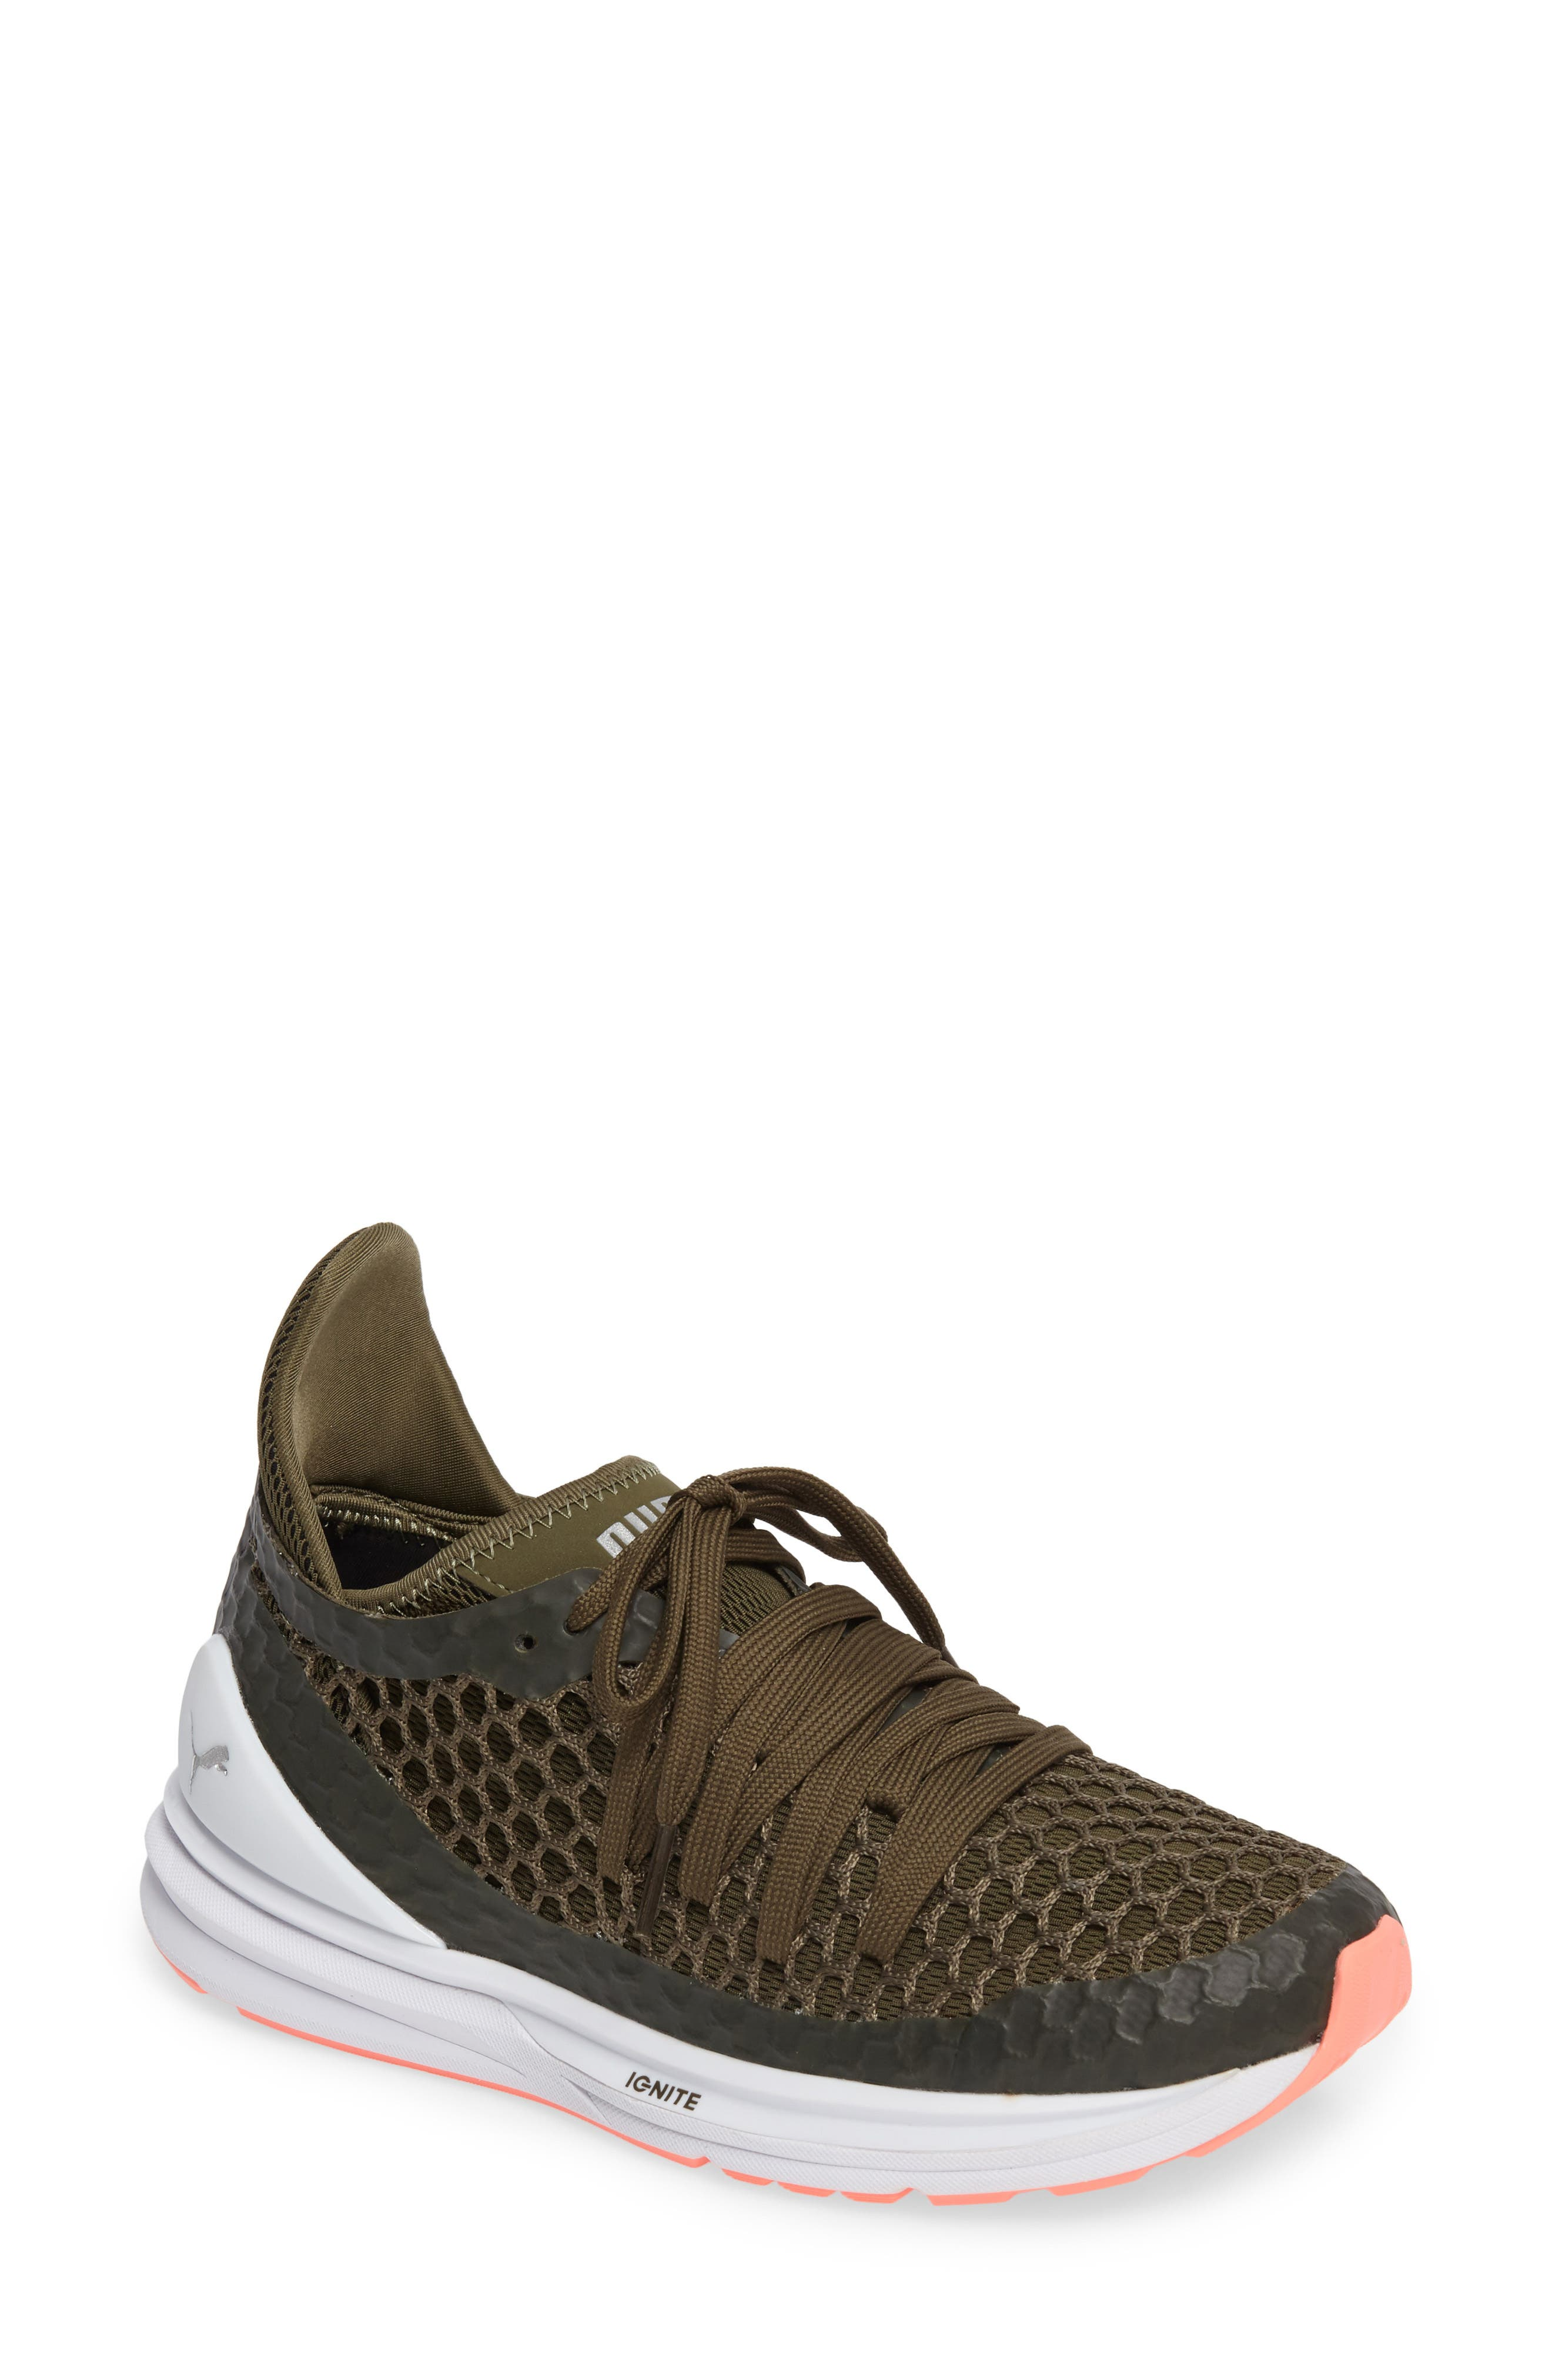 Main Image - PUMA Ignite Limitless Netfit Running Shoe (Women)